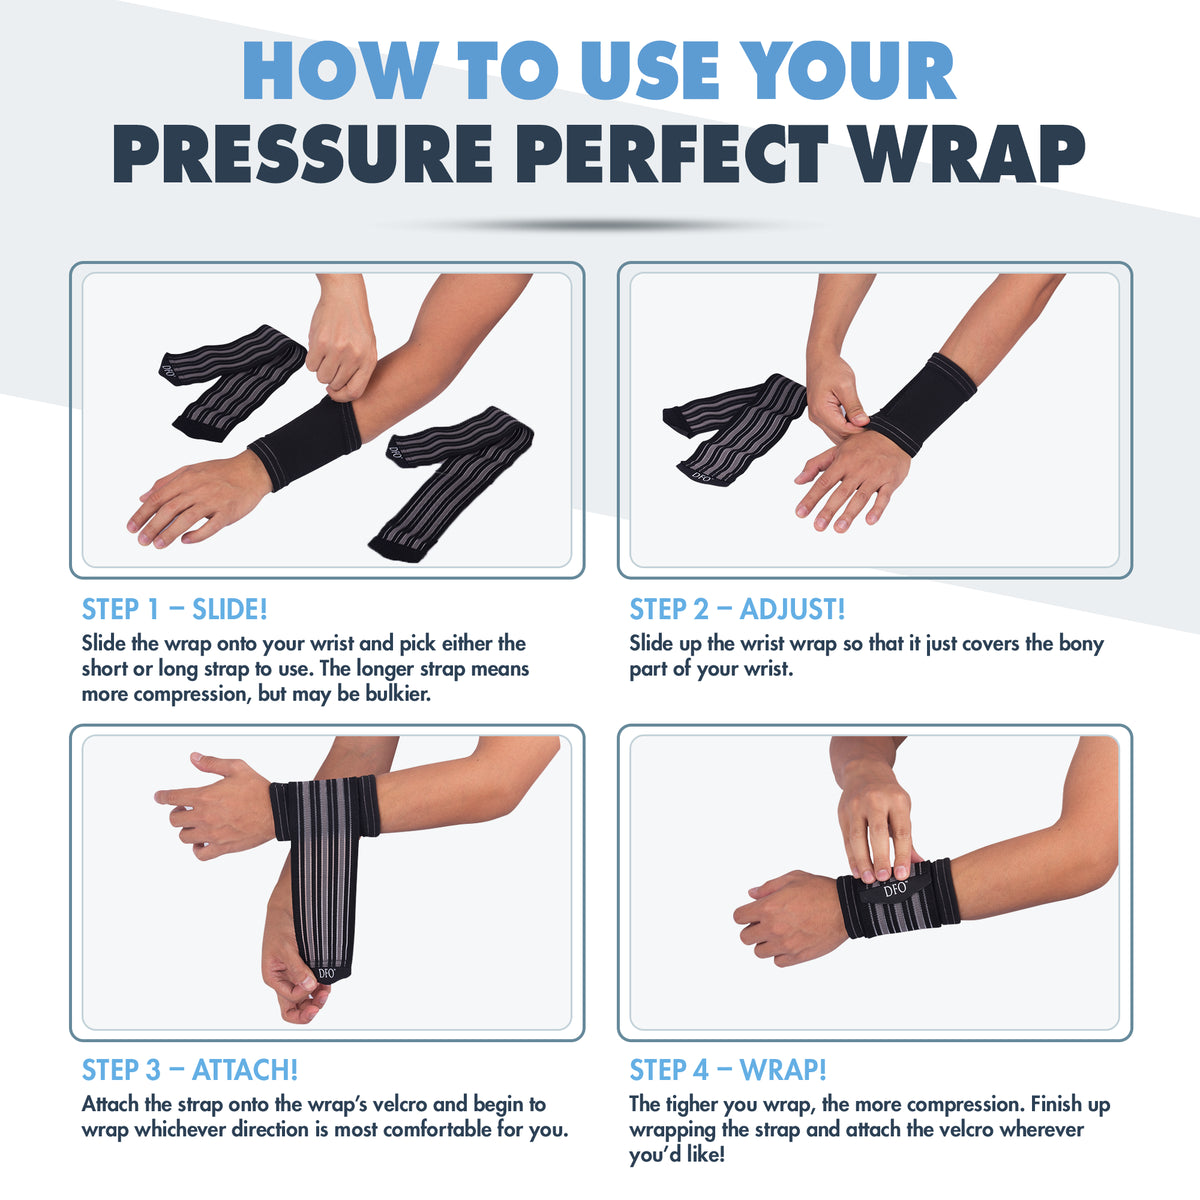 Dr. Frederick's Original Pressure Perfect Wrist Wrap System -- for Wrist Pain